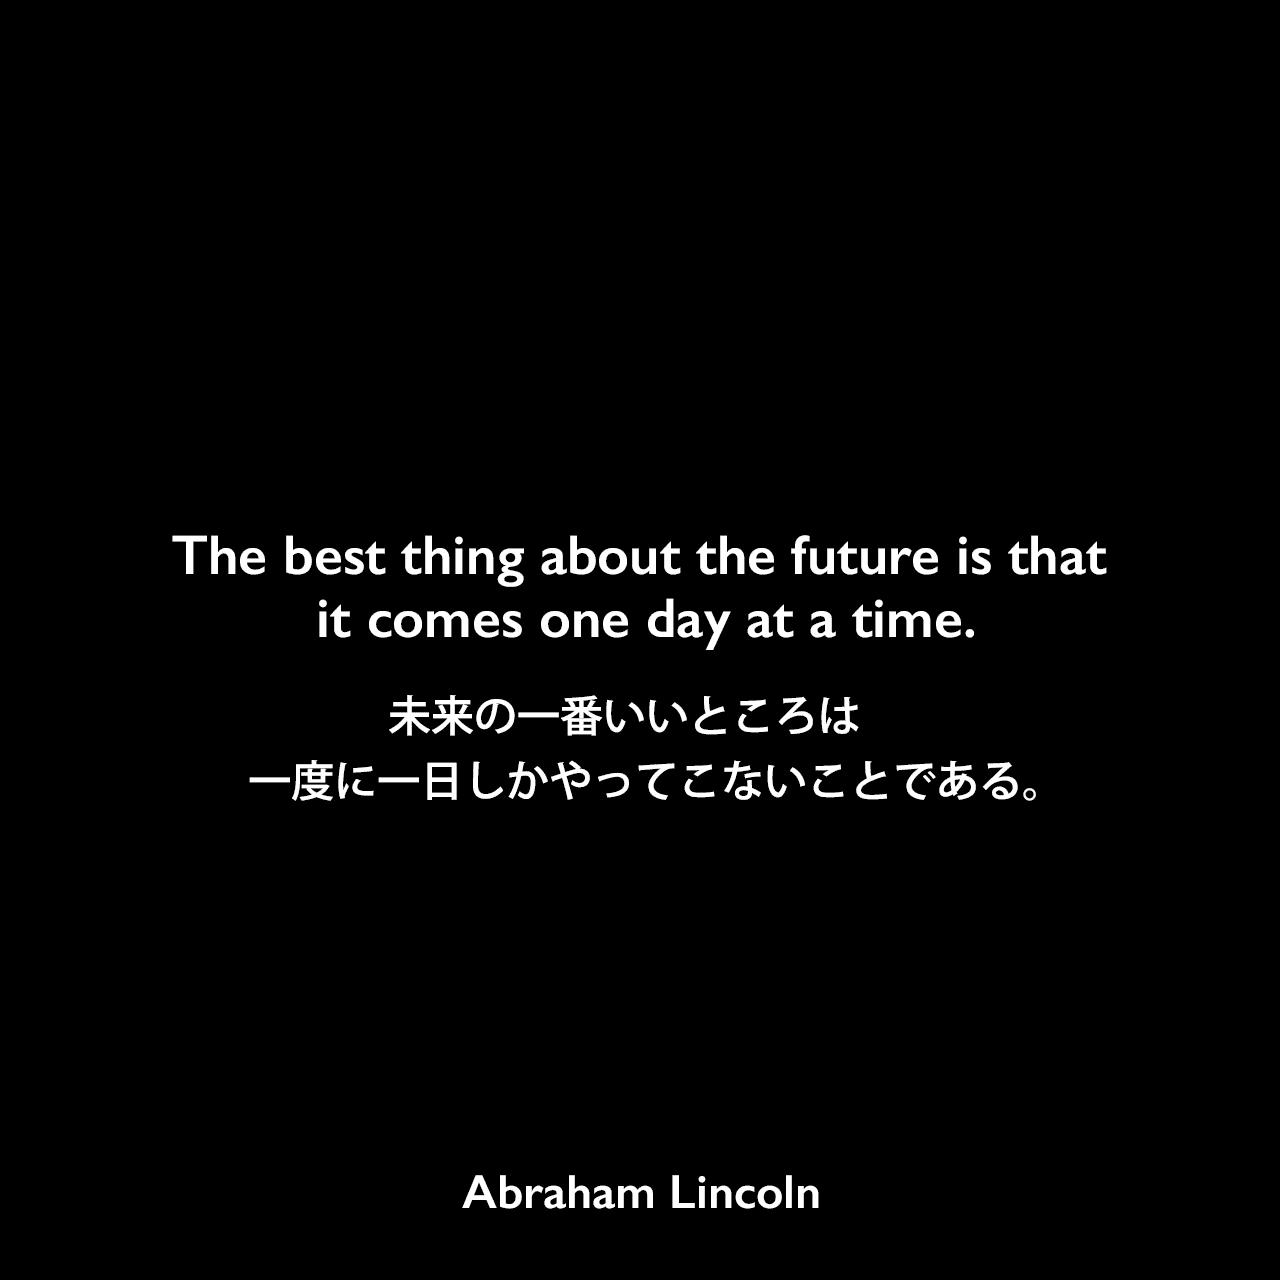 The best thing about the future is that it comes one day at a time.未来の一番いいところは 一度に一日しかやってこないことである。Abraham Lincoln